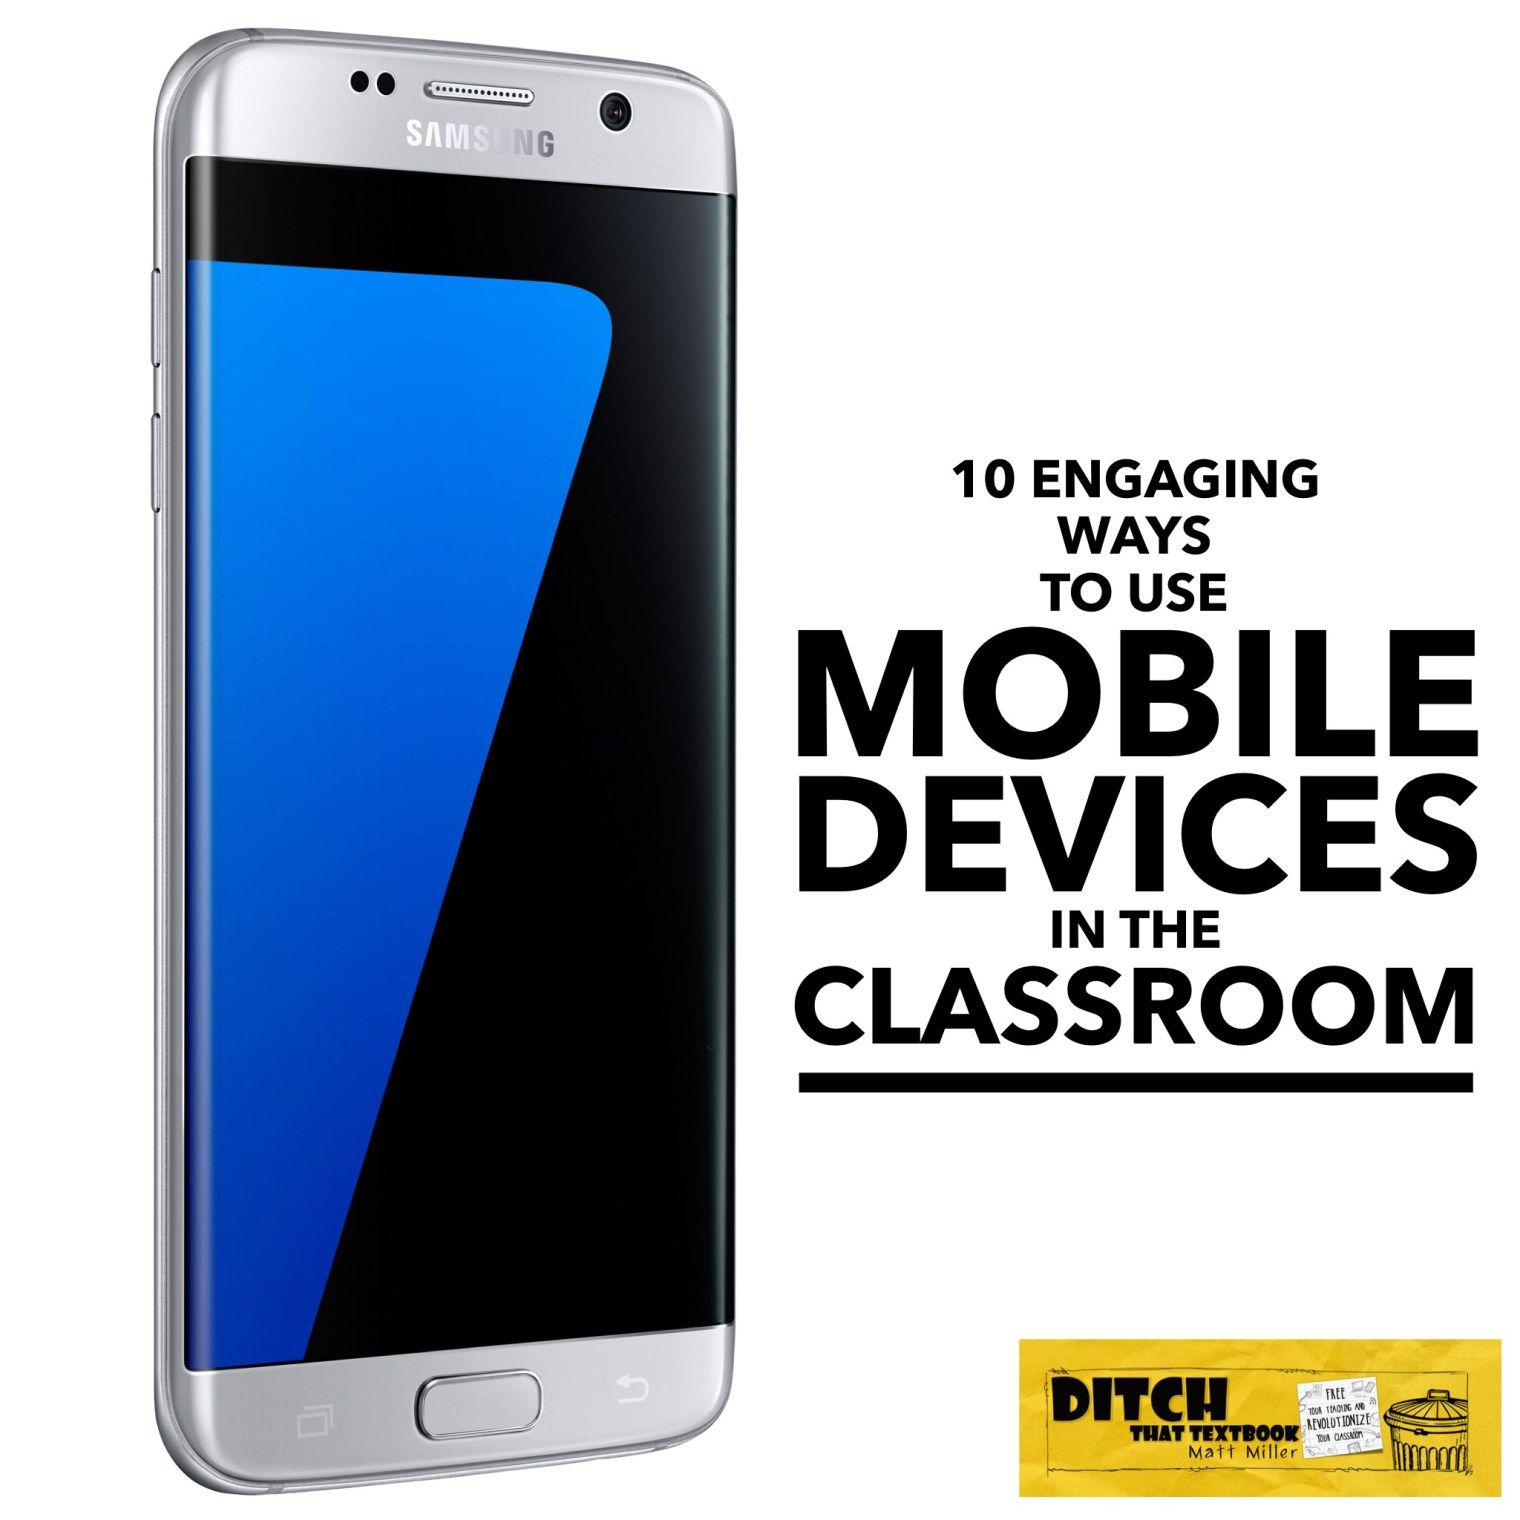 10 Engaging Ways To Use Mobile Devices In The Classroom Ditch That Textbook Classroom Mobile Learning Mobile Device